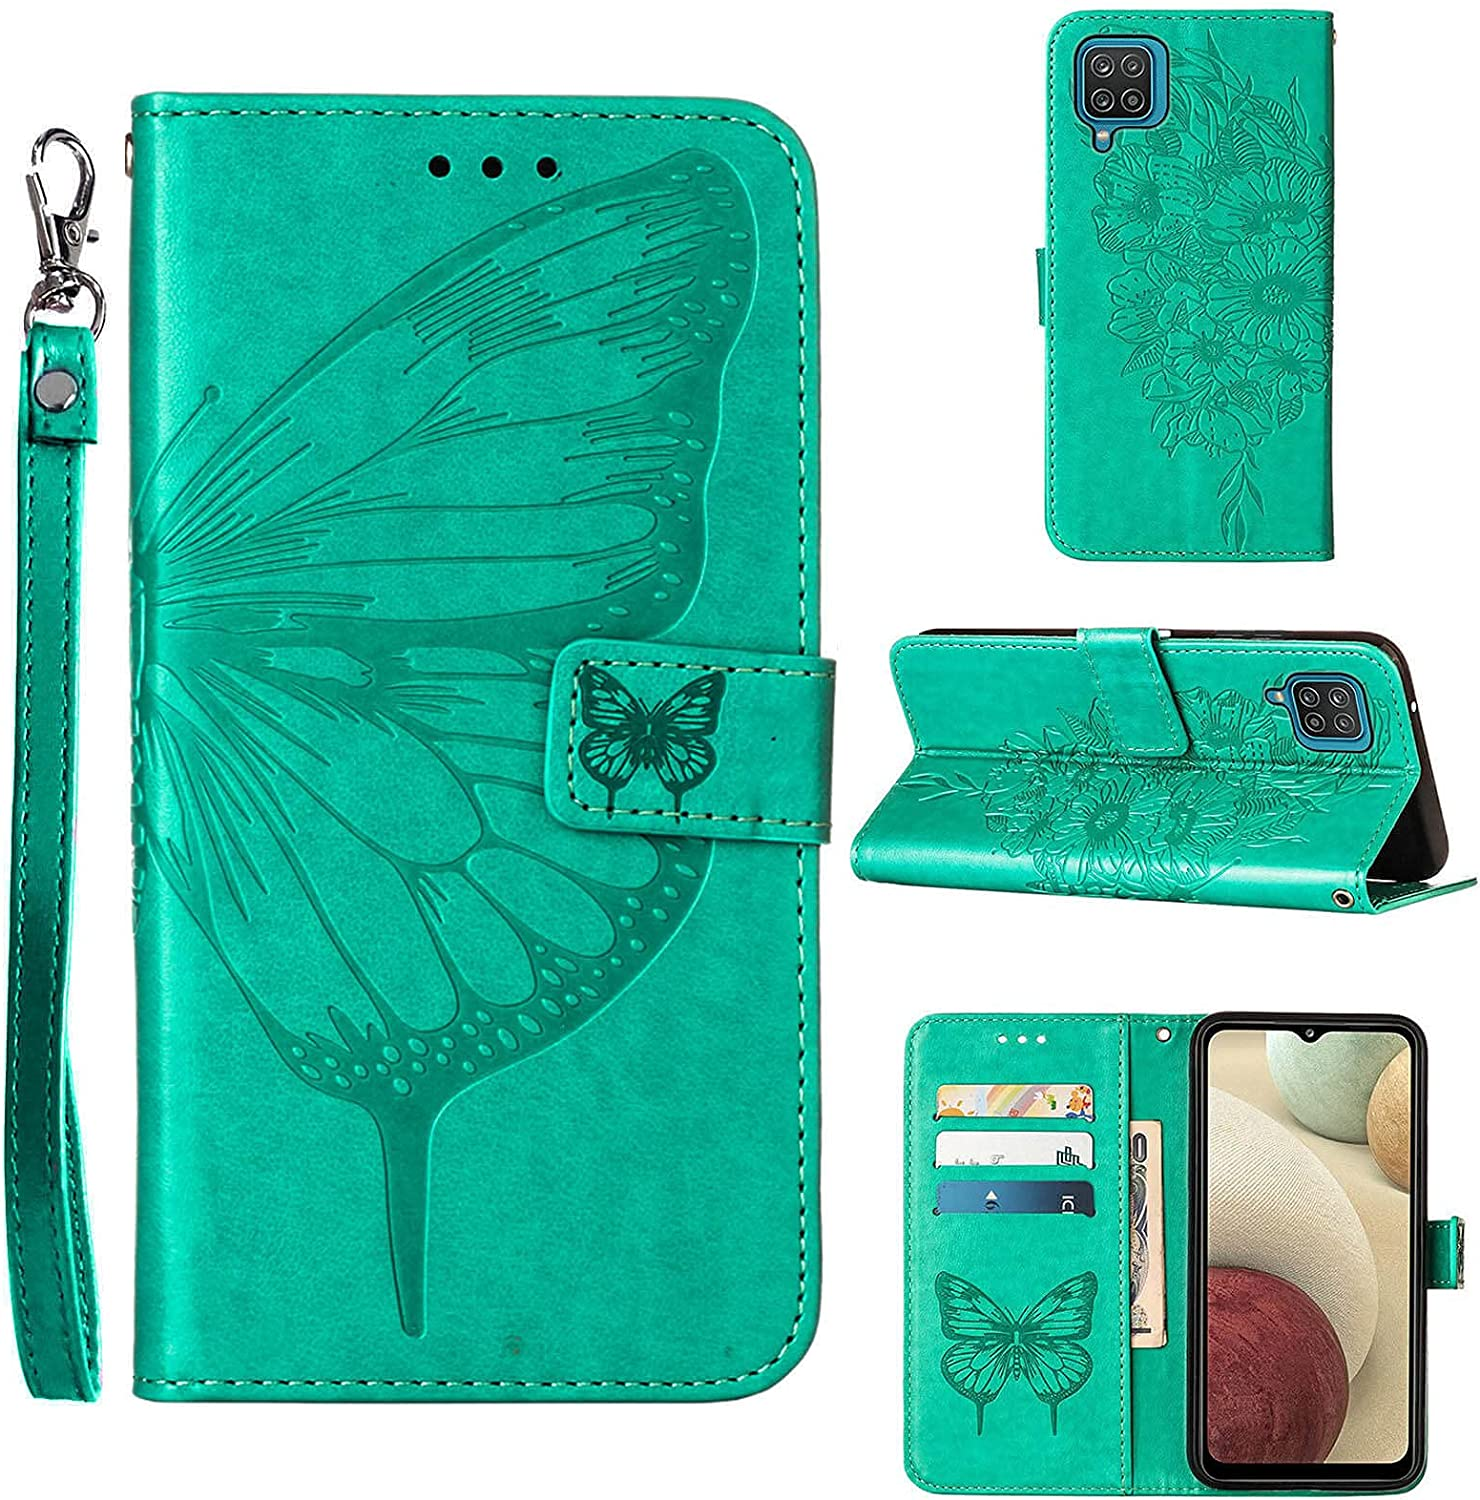 A12 Phone Case Wallet,for Galaxy A12 Case,[Kickstand][Wrist Strap][Card Holder Slots] Butterfly Floral Embossed PU Leather Flip Protective Cover for Samsung A12 Case (Green)